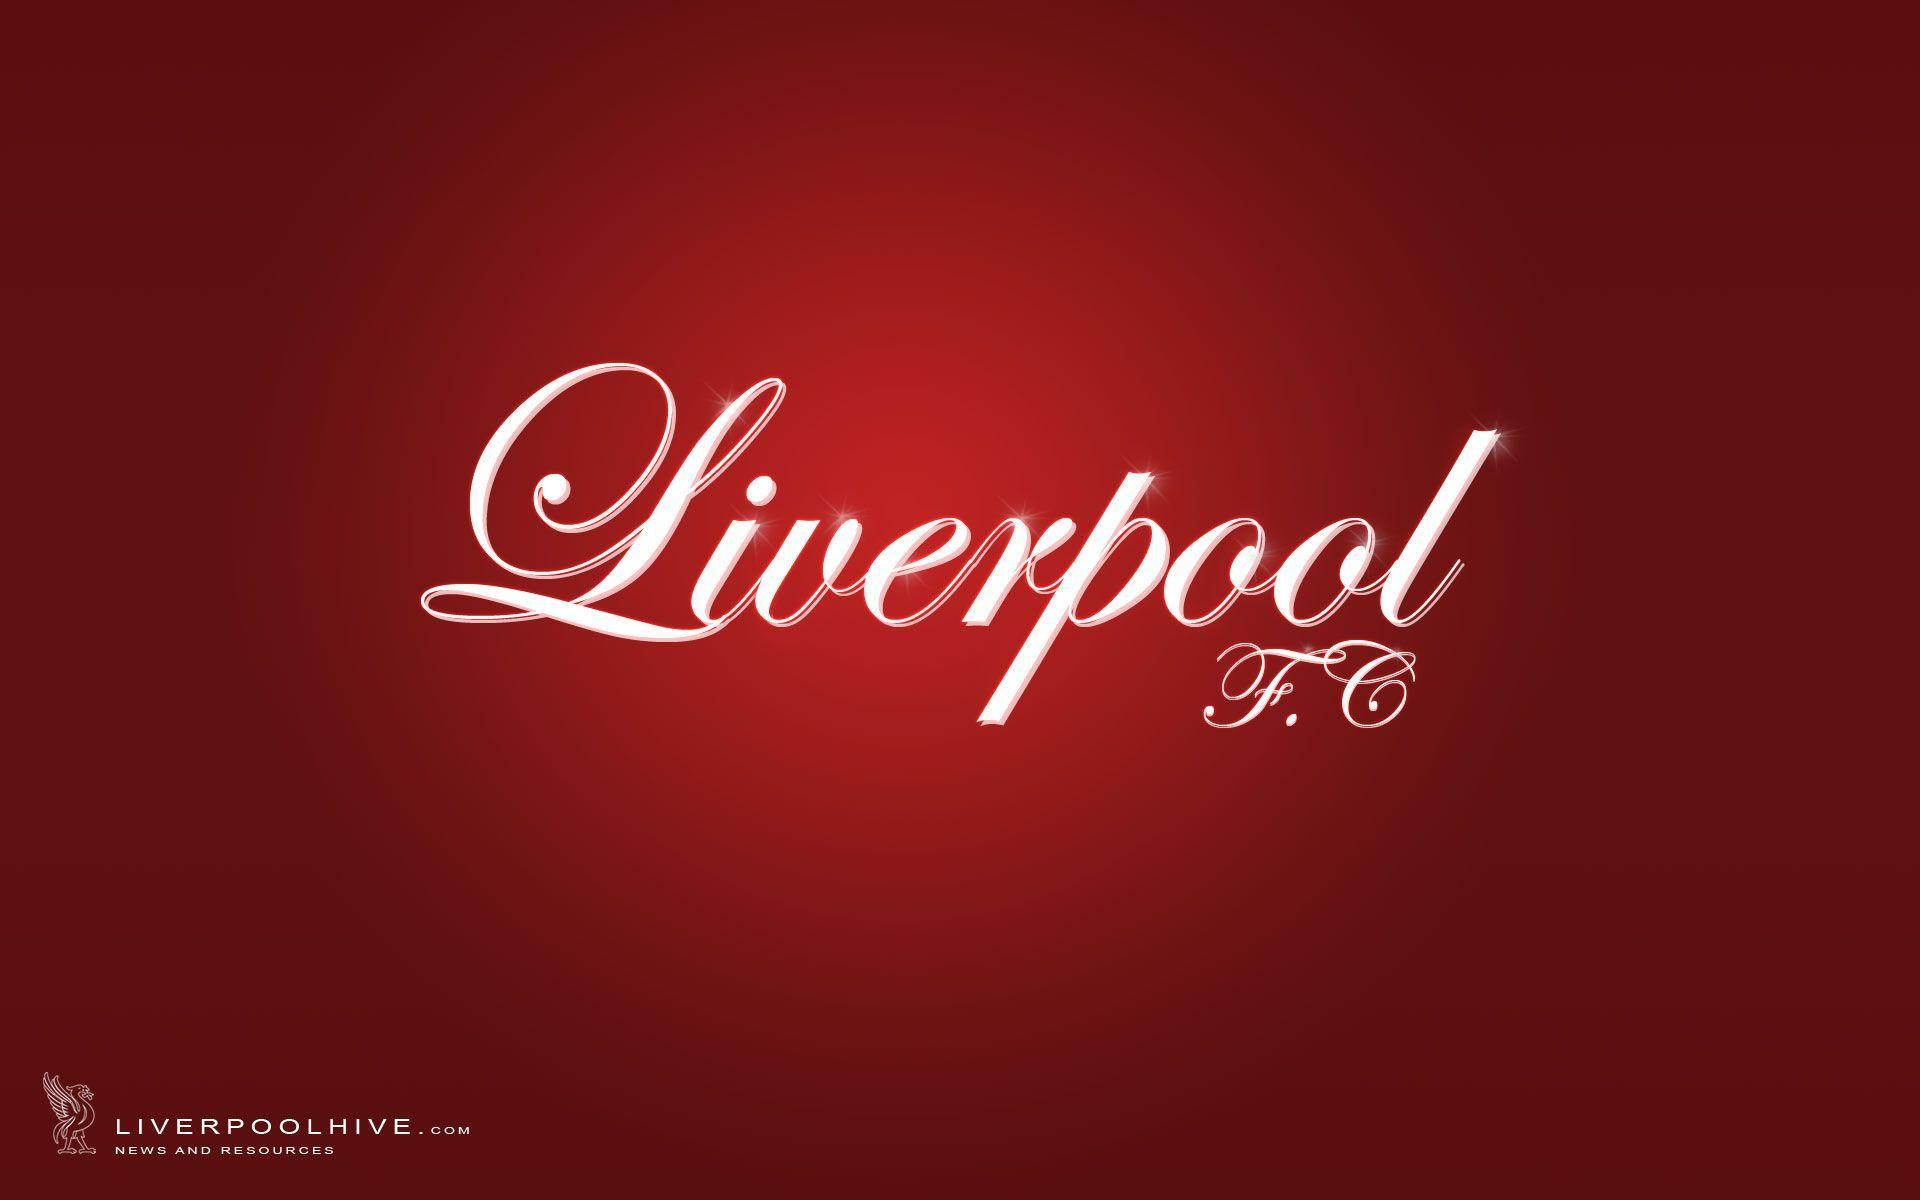 Wallpapers Logo Liverpool 2016 - Wallpaper Cave